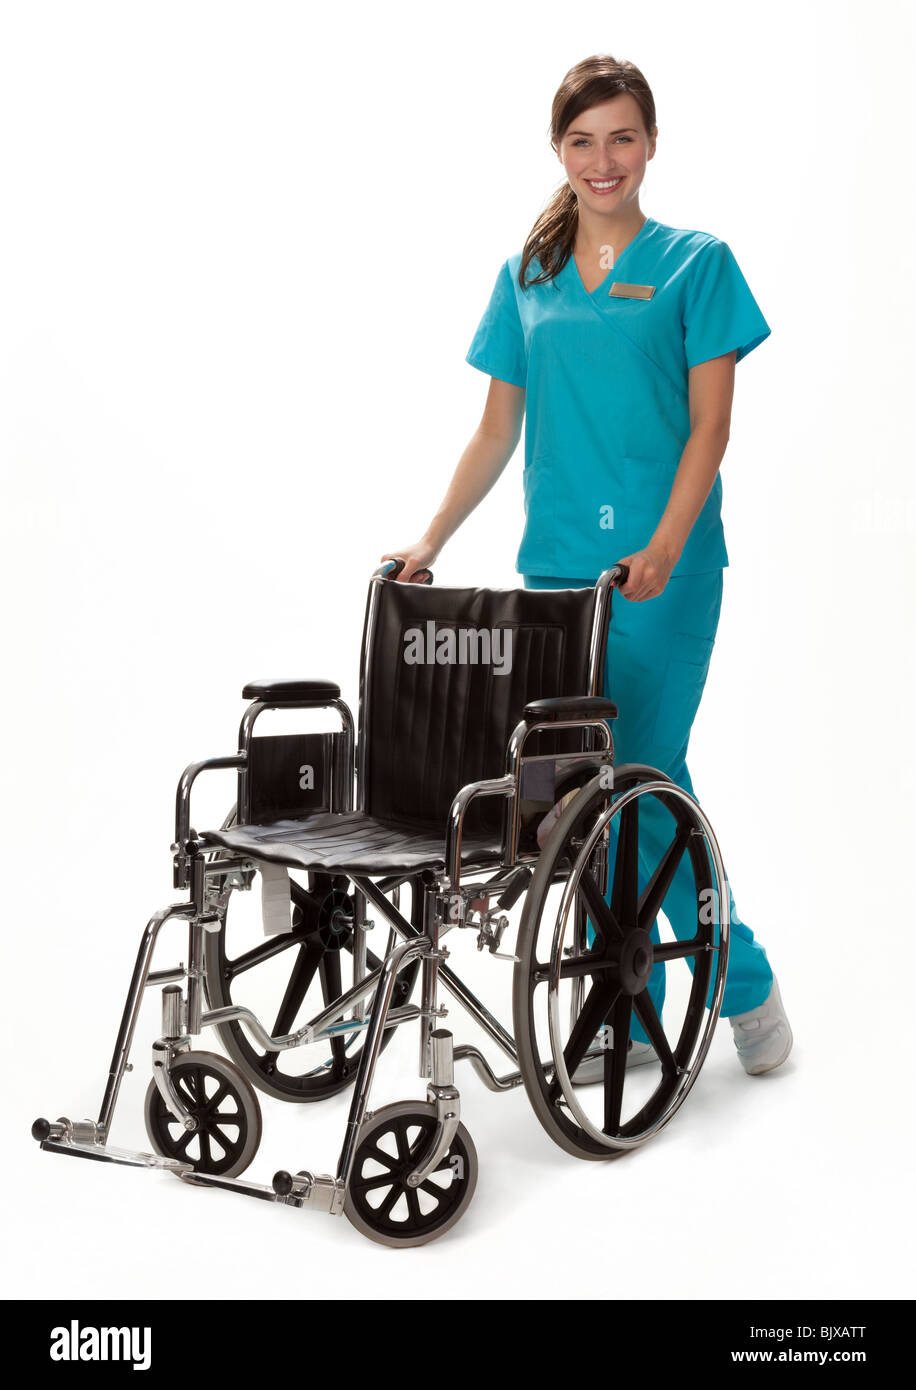 Studio photo of female health care worker standing beside wheelchair. White background. - Stock Image